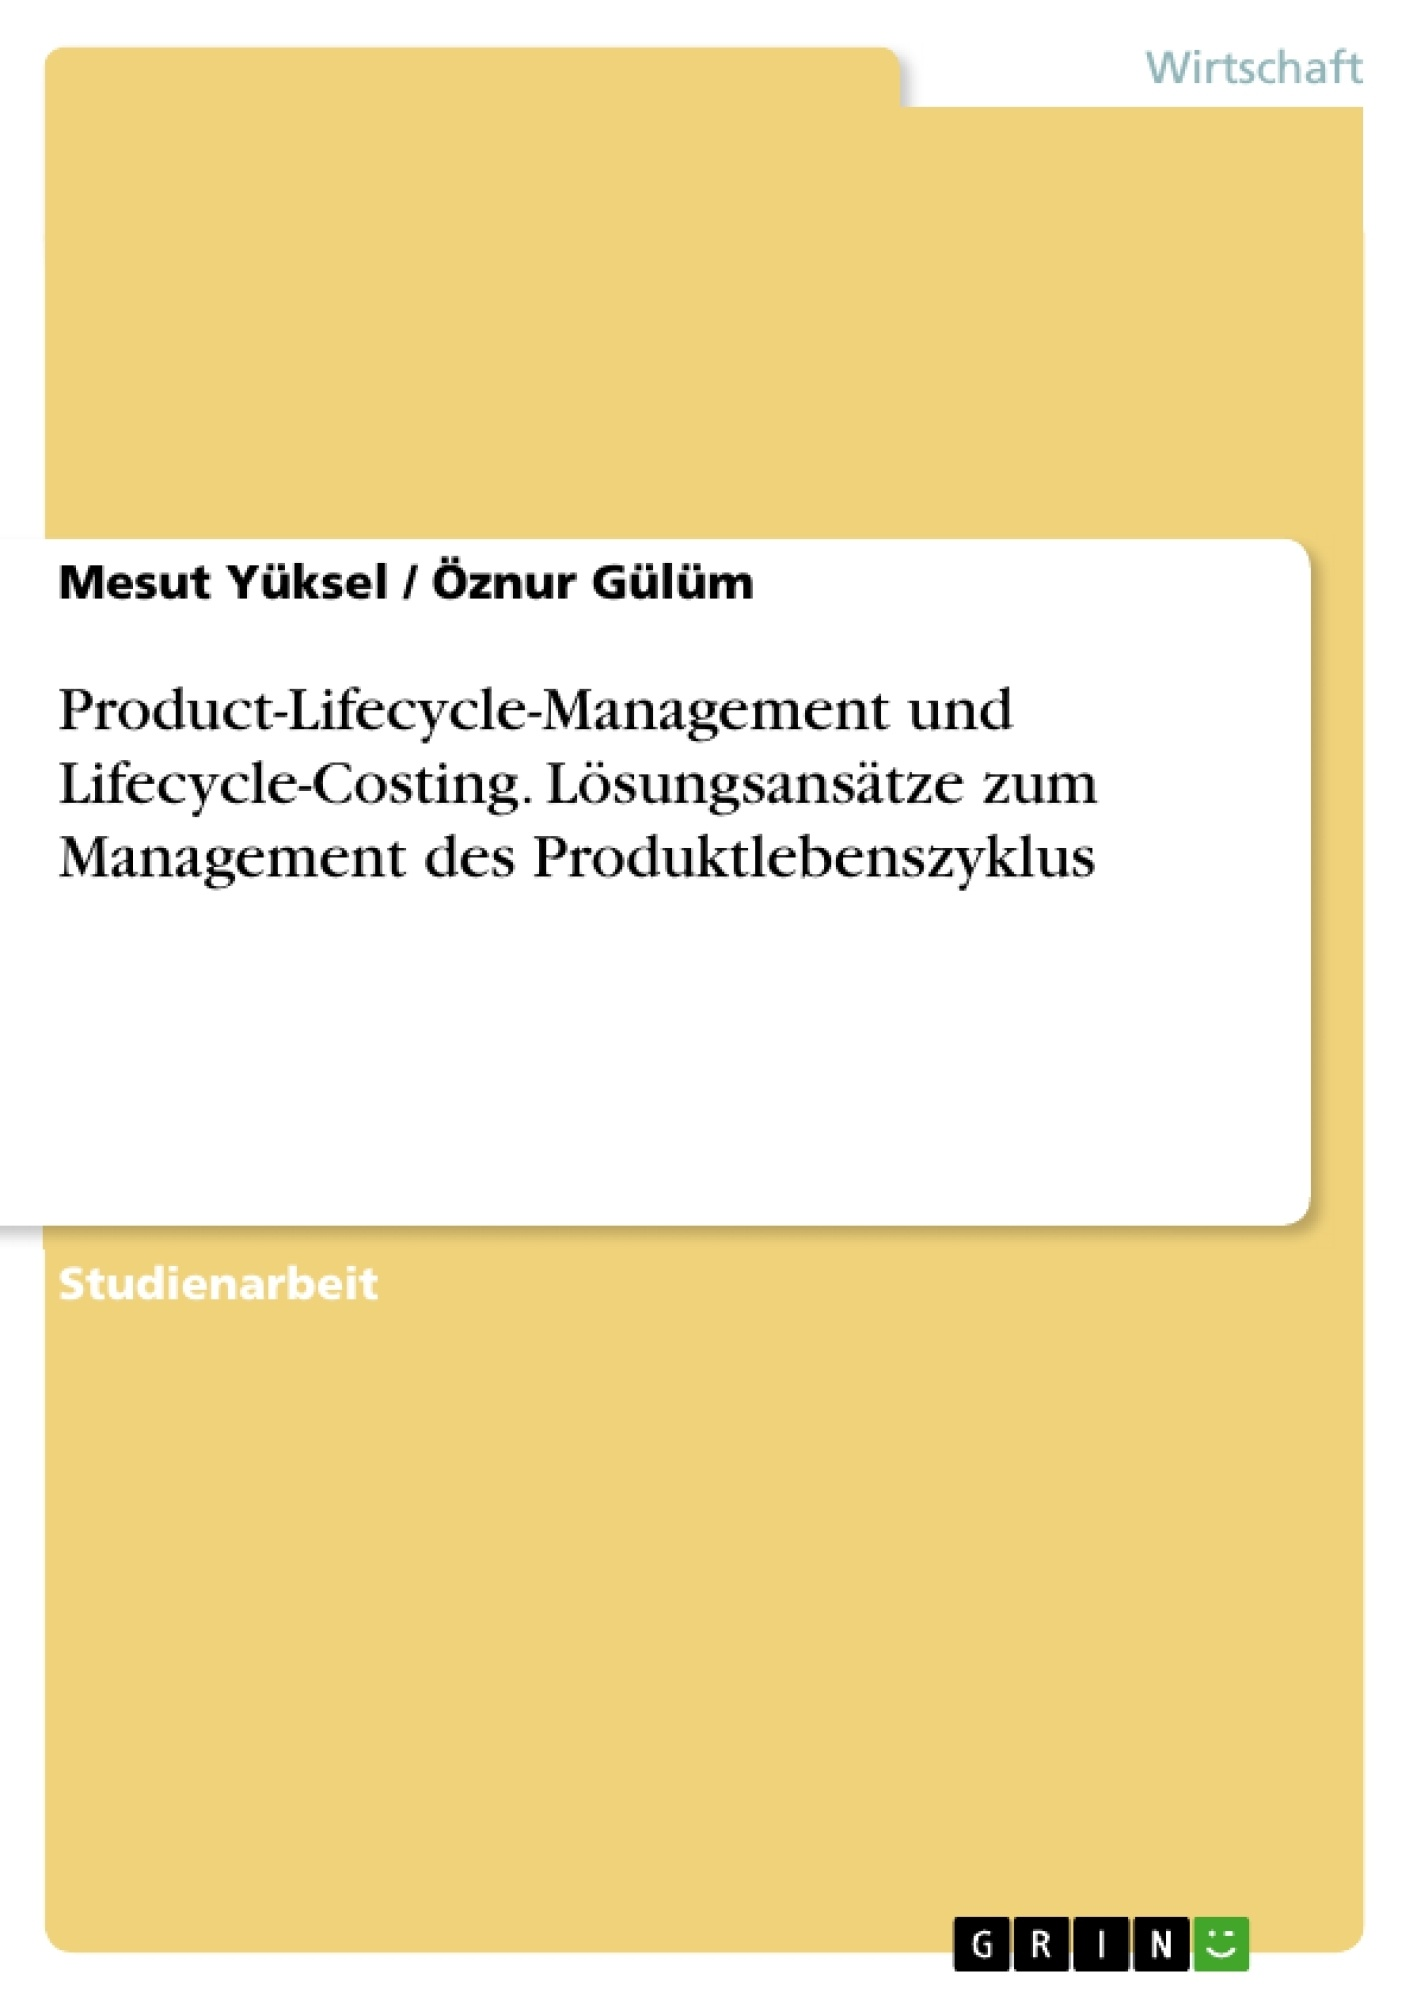 Titel: Product-Lifecycle-Management und Lifecycle-Costing. Lösungsansätze zum Management des Produktlebenszyklus